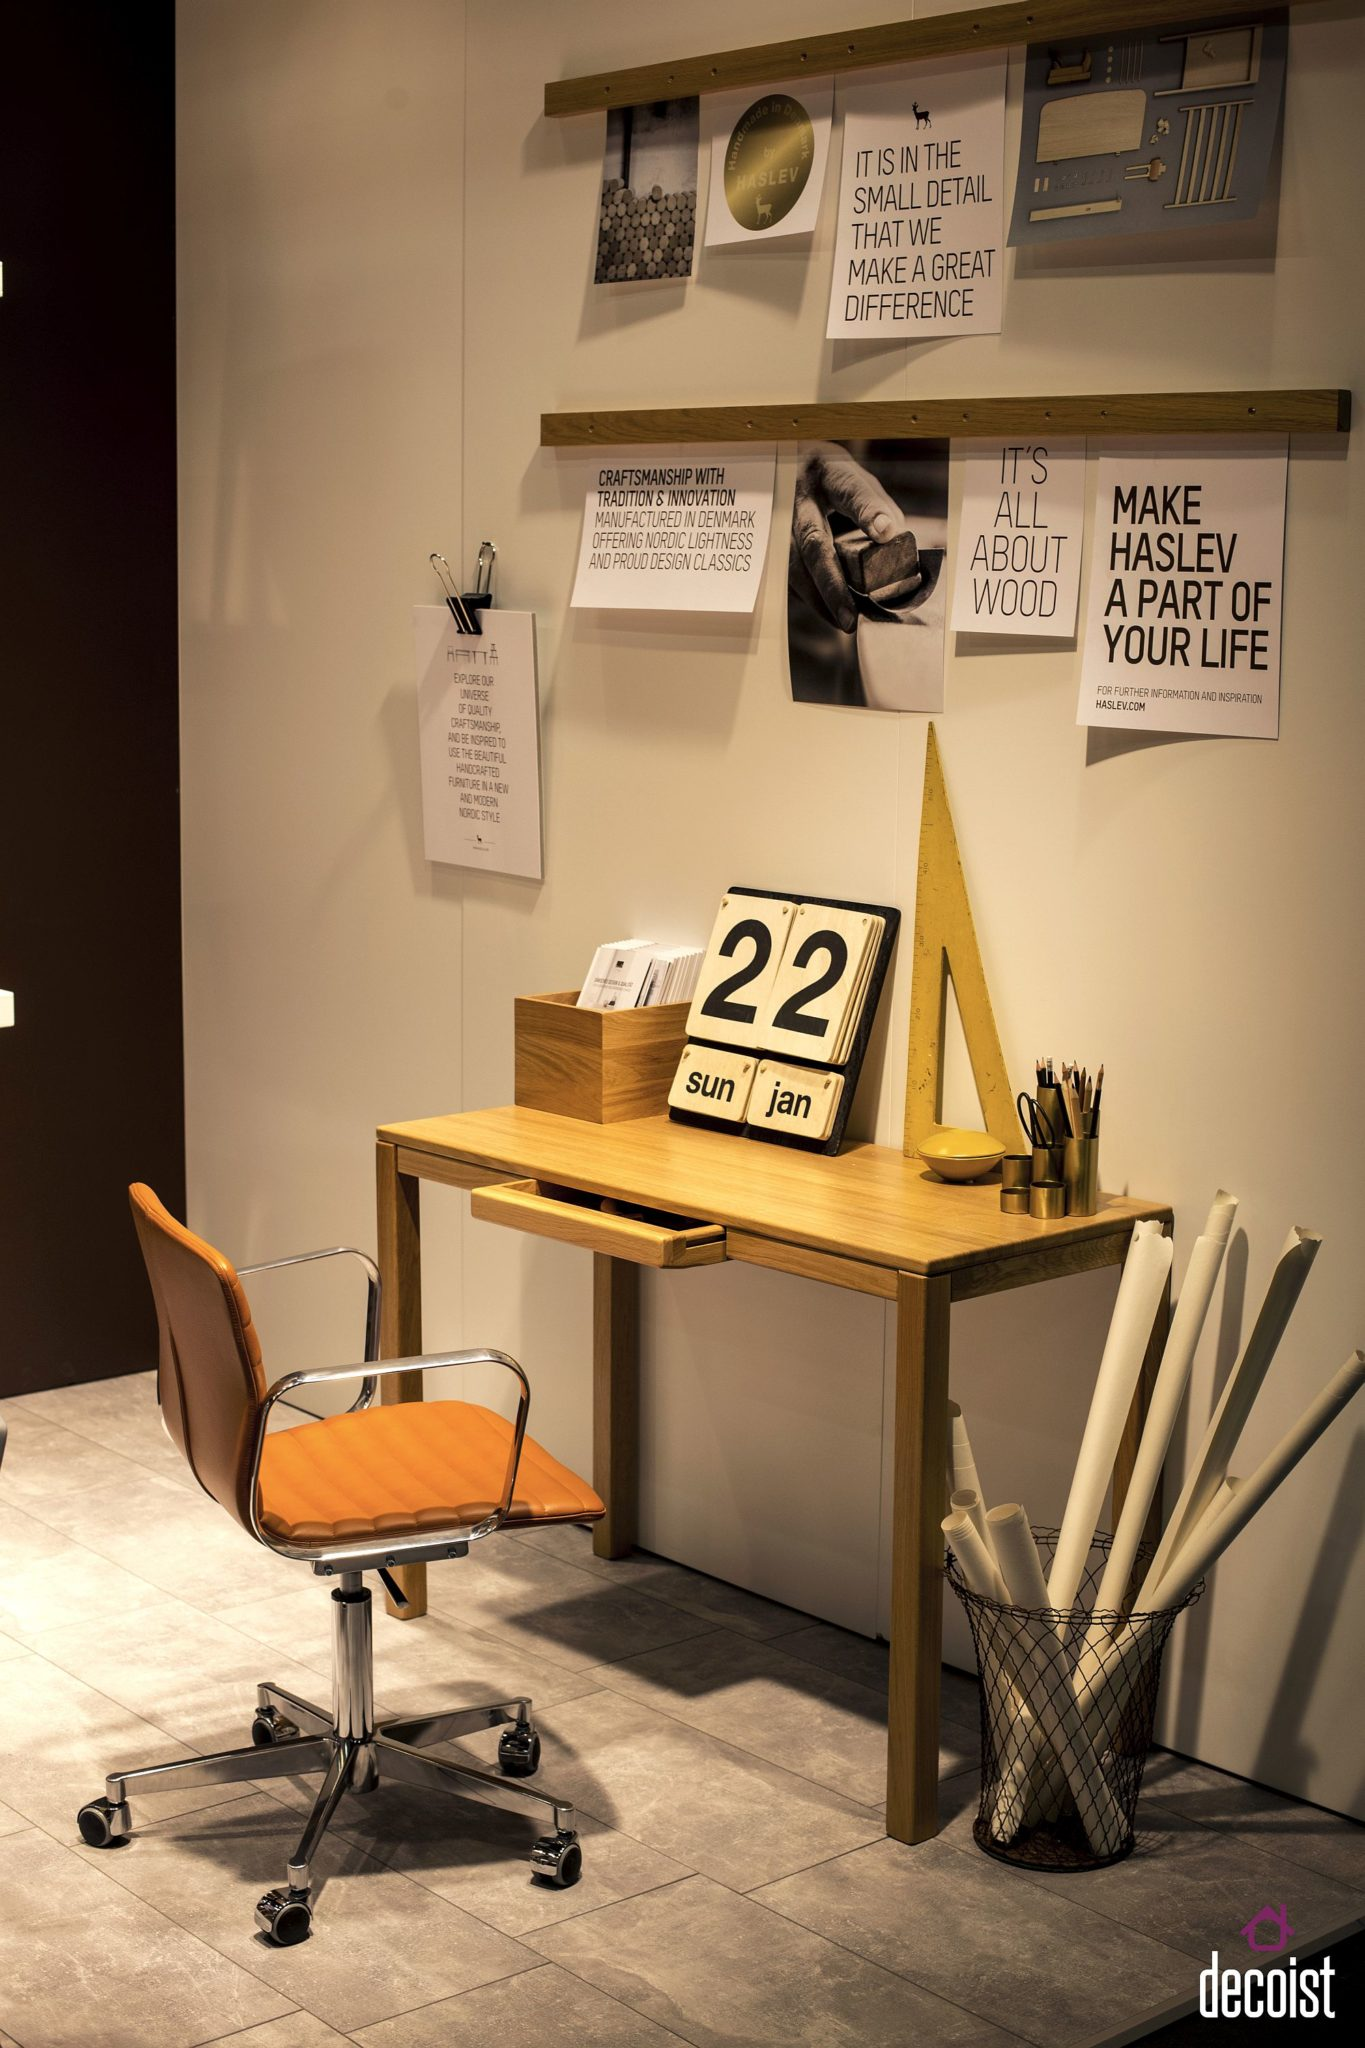 Exquisite wooden workdesk from Haslev